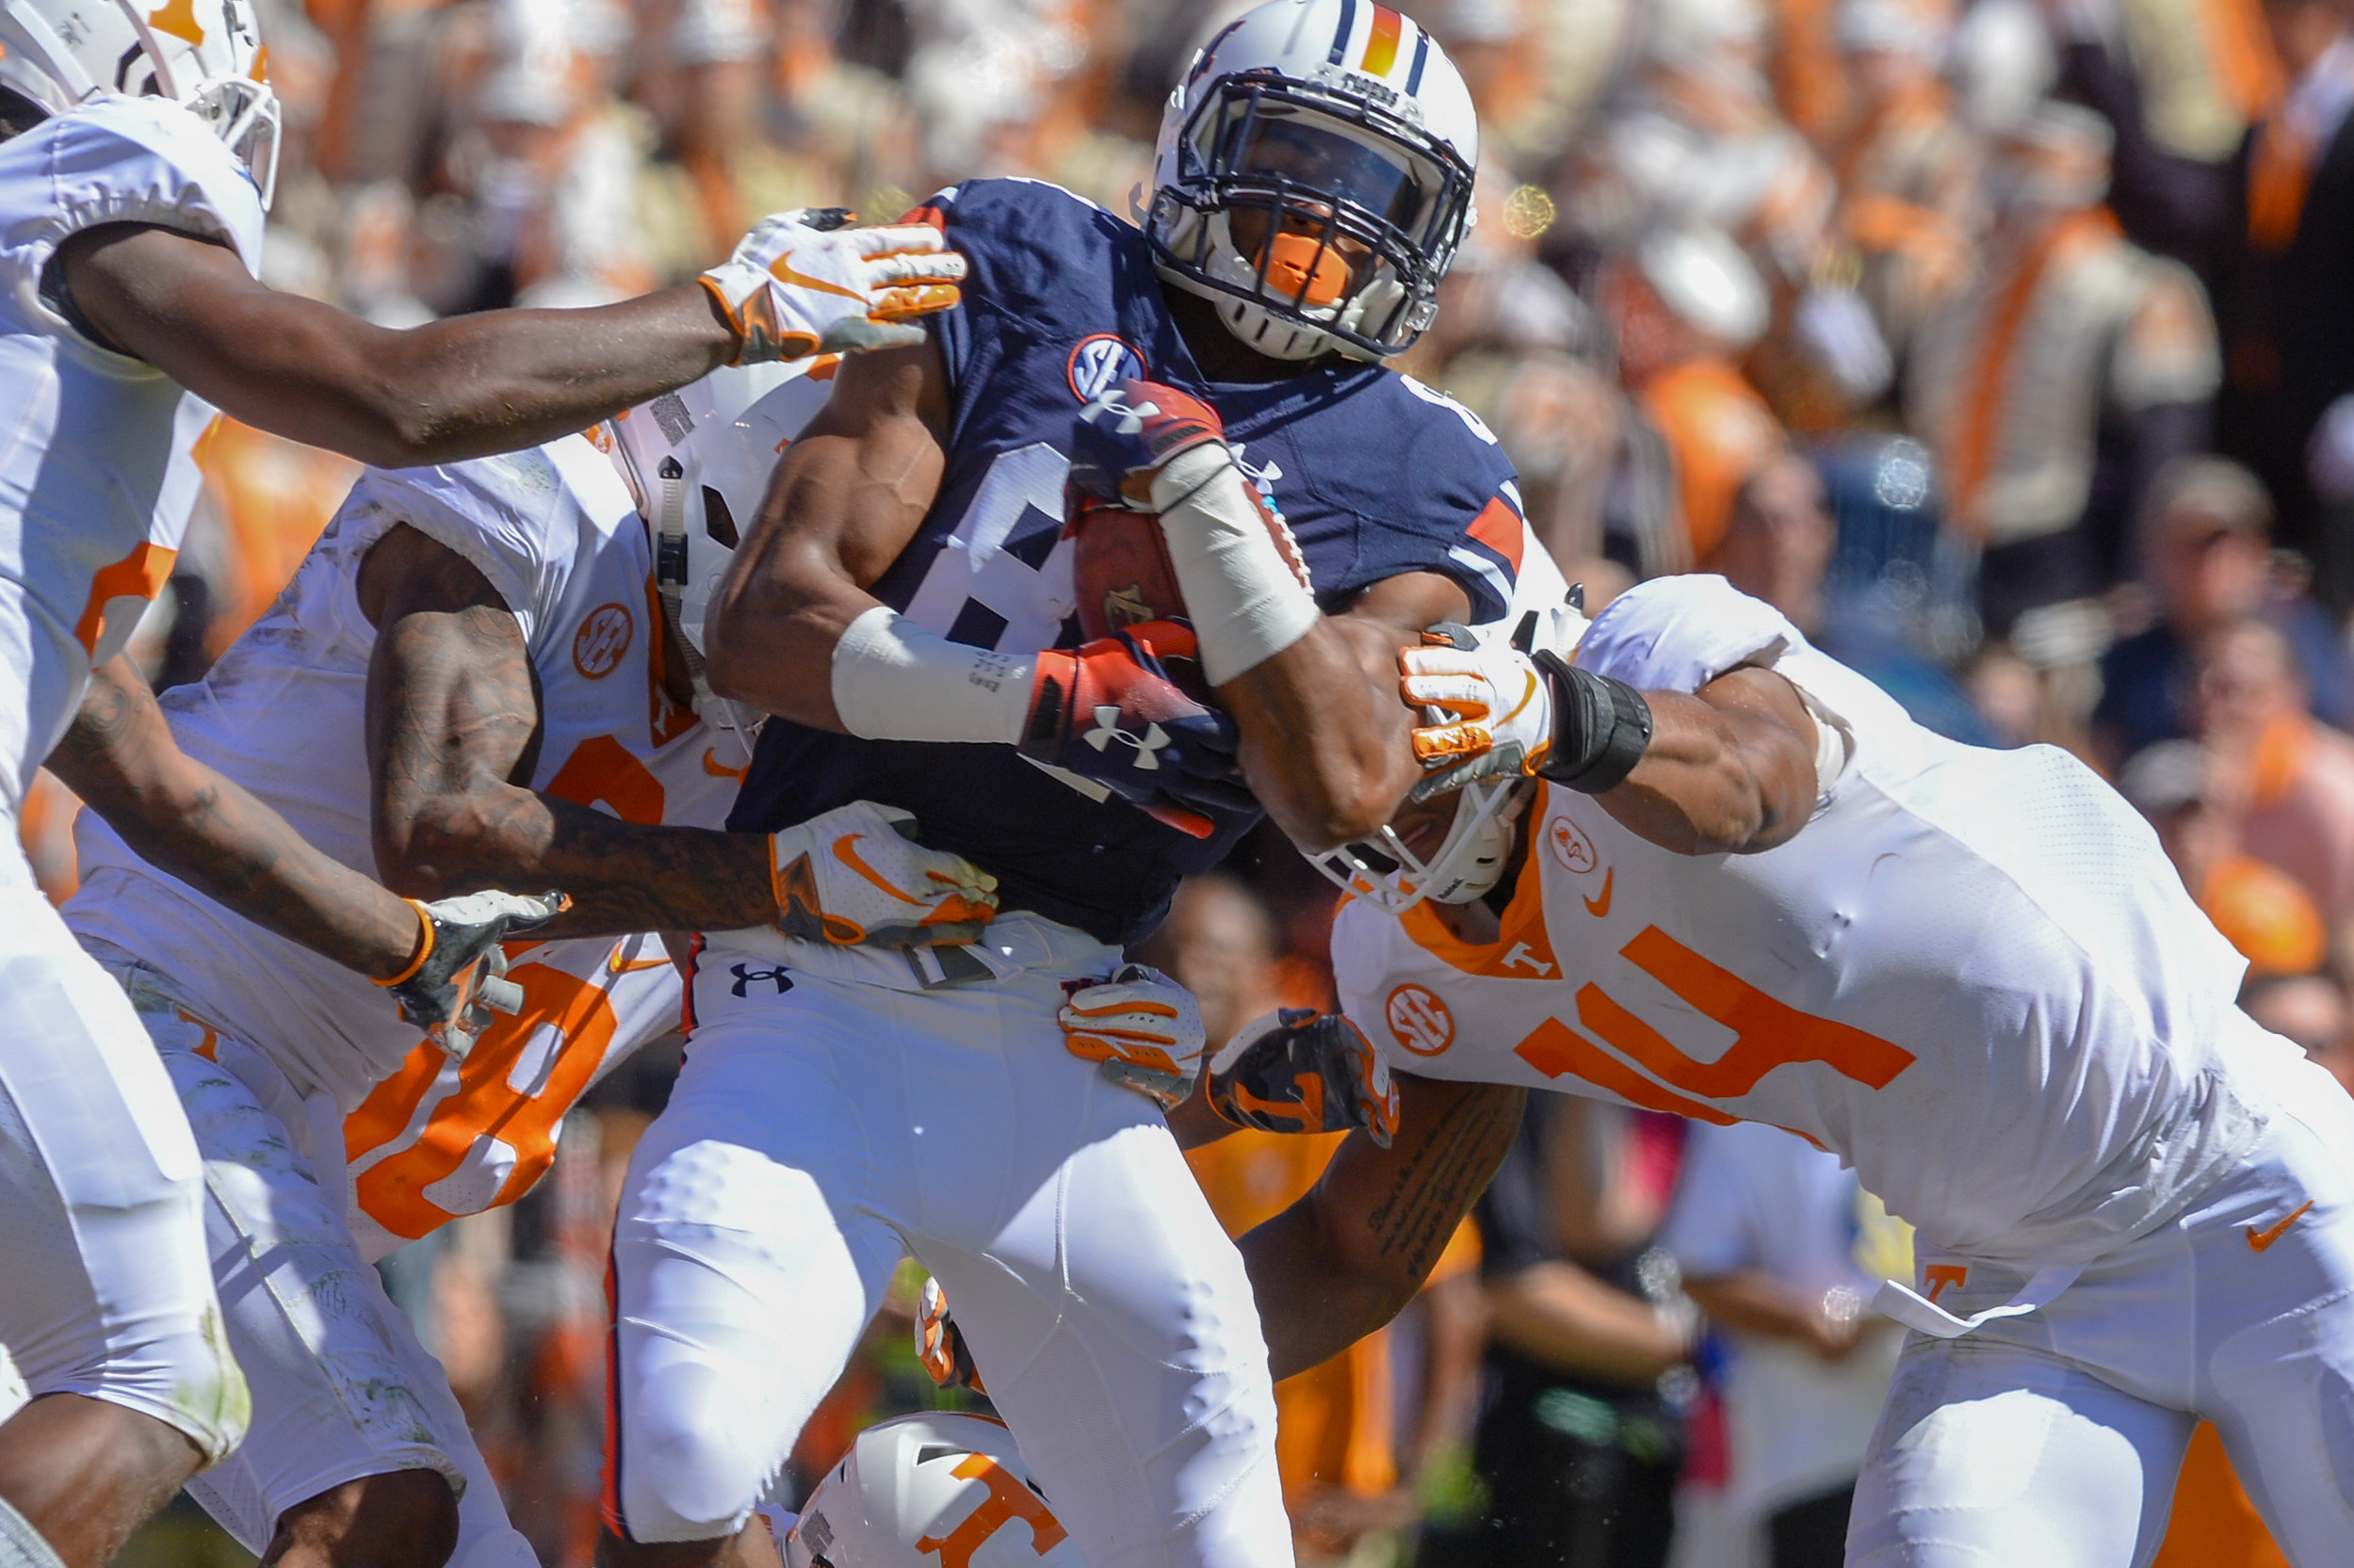 Auburn Tigers wide receiver Darius Slayton (81) is brought down by Tennessee Volunteers linebacker Quart'e Sapp (14) during the first half of Saturday's game, at Jordan-Hare Stadium in Auburn, AL. Daily Mountain Eagle -  Jeff Johnsey